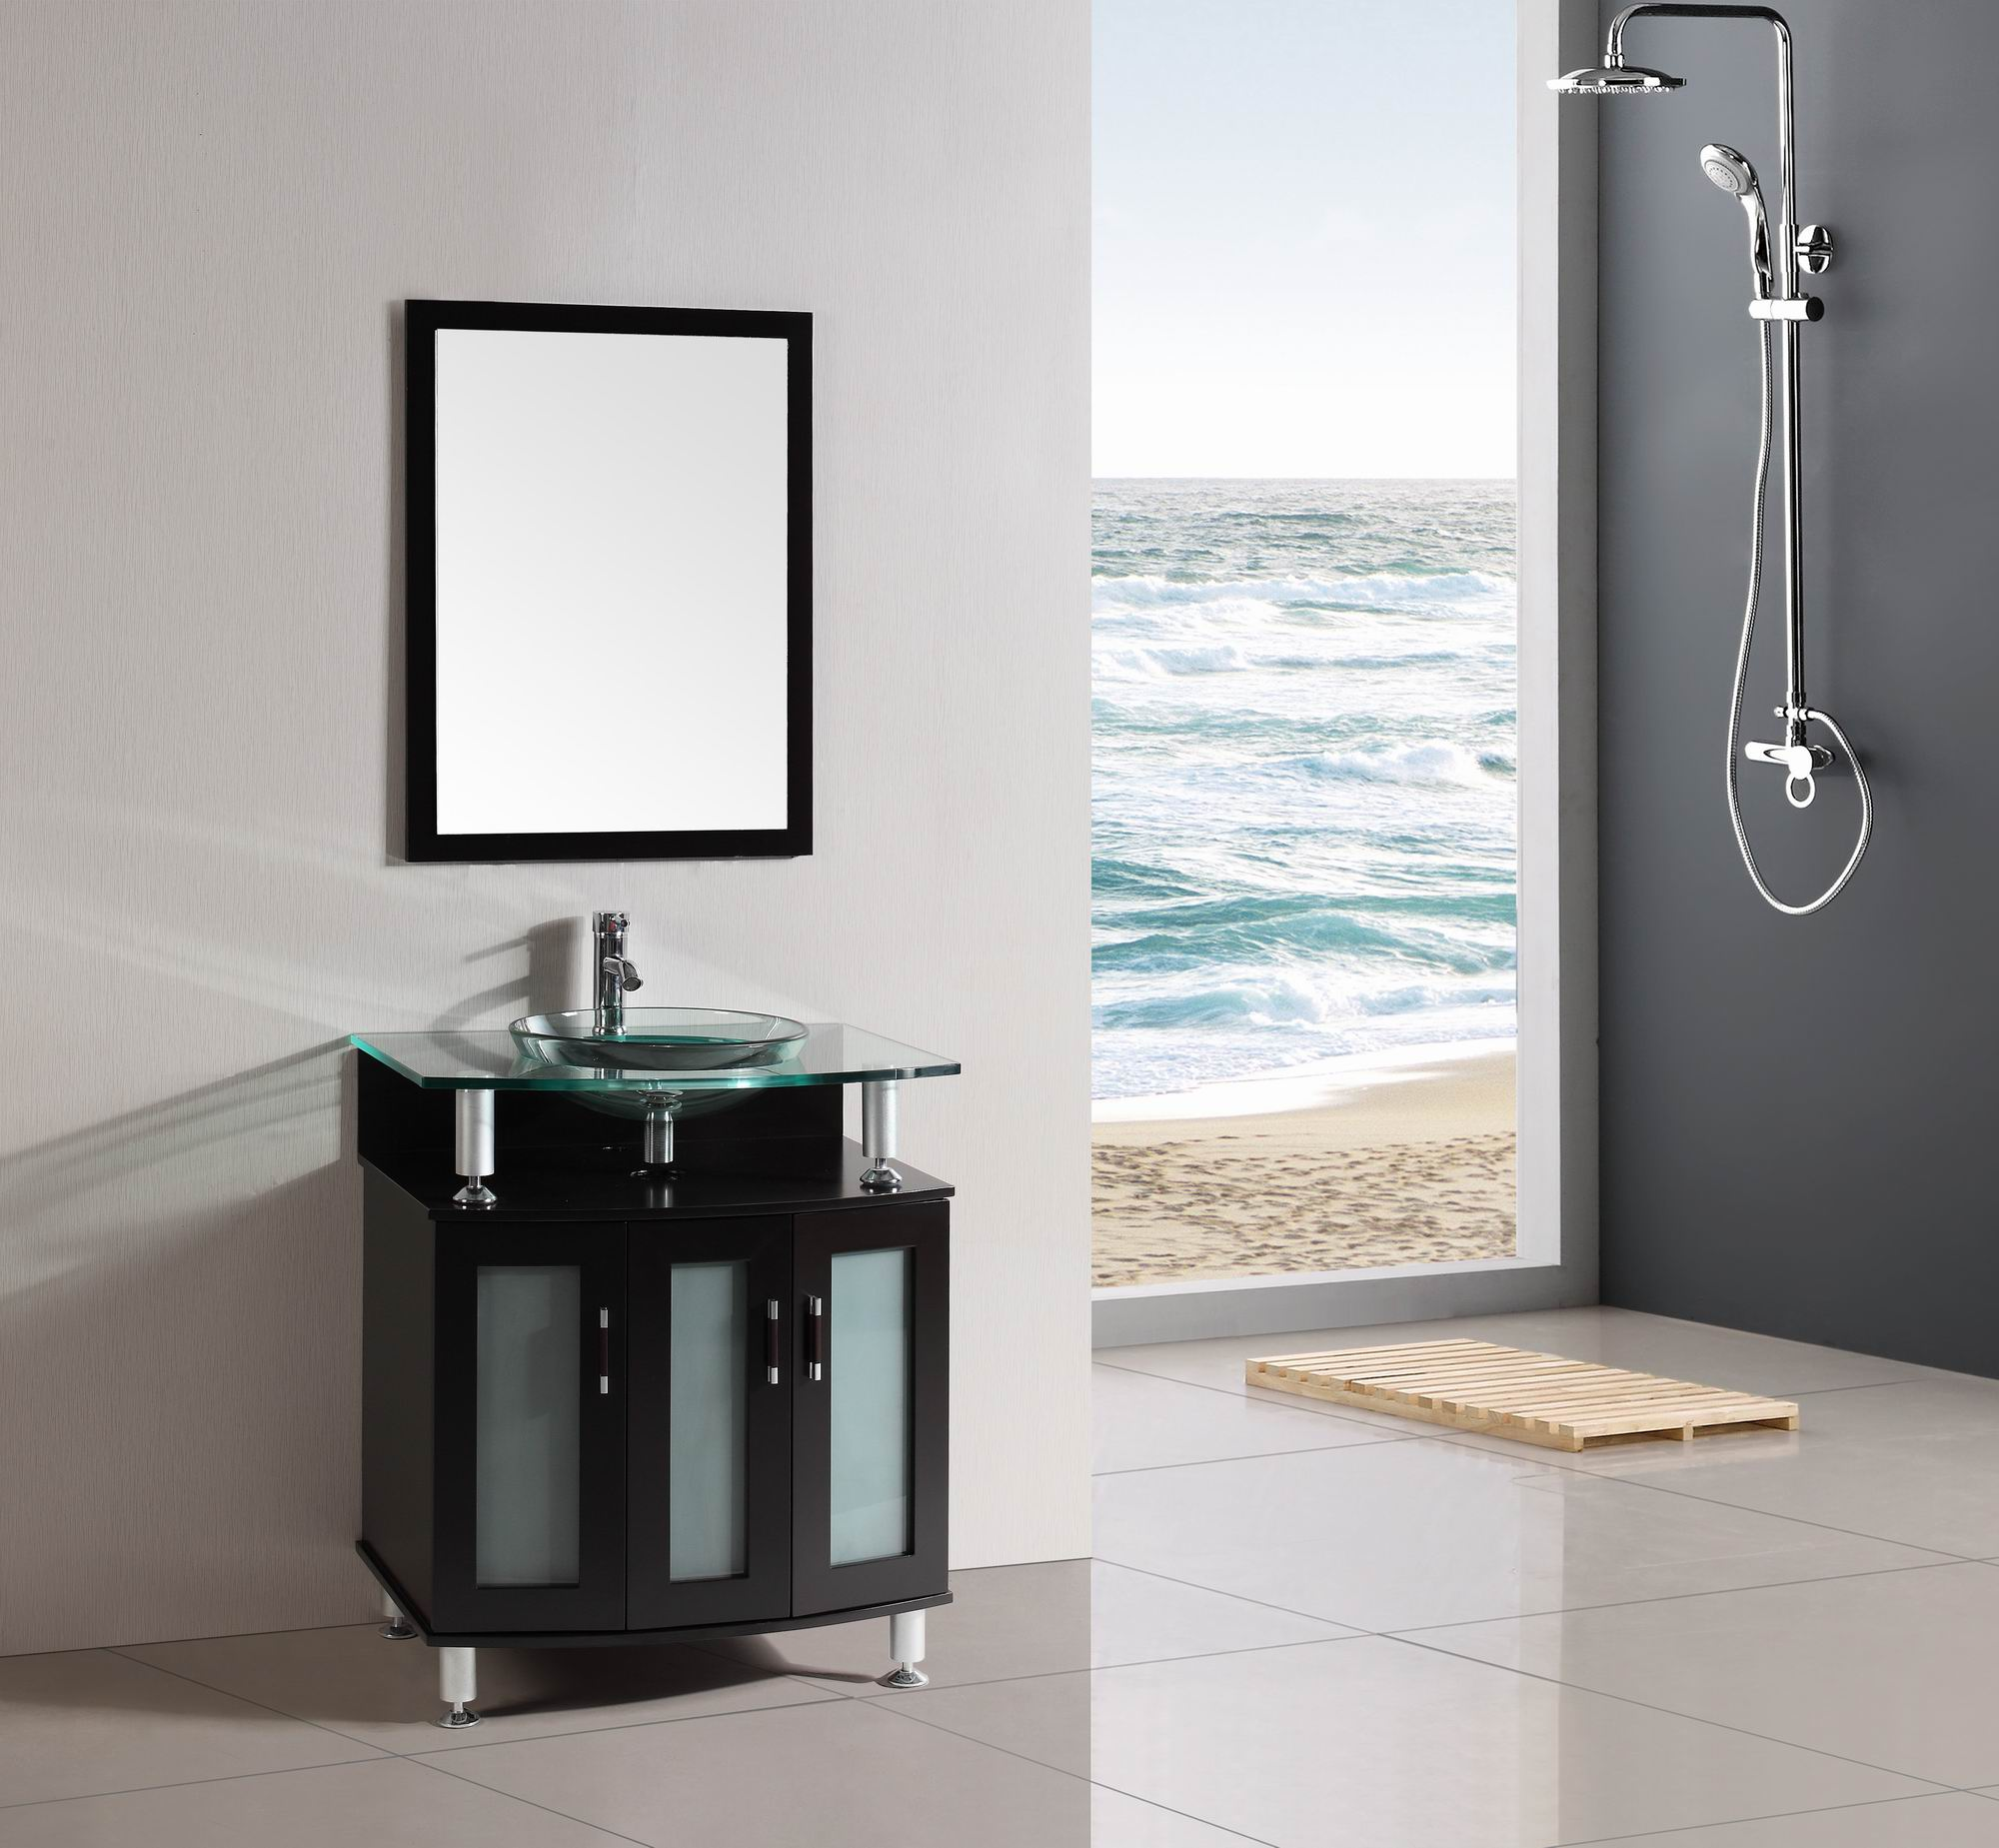 Inspiring 30 Bathroom Vanity Ideas